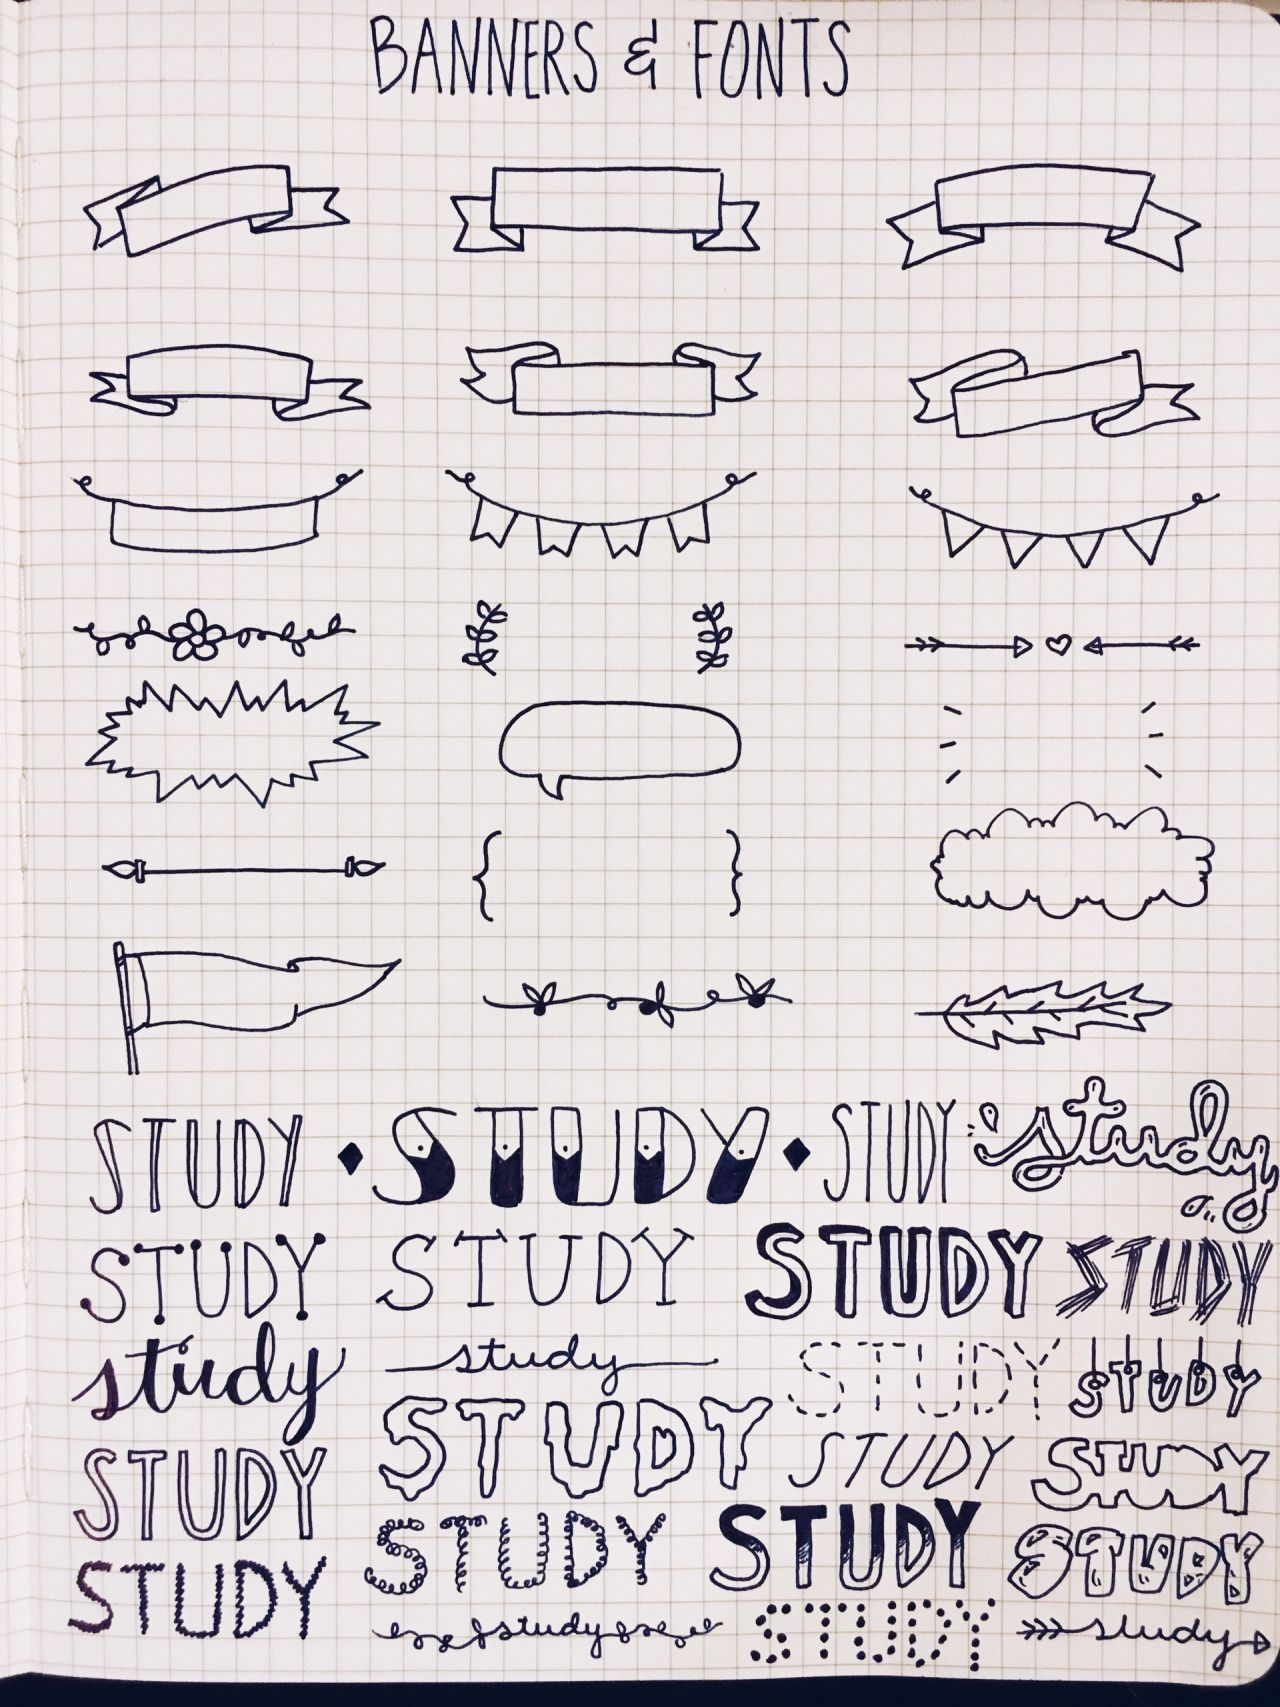 studypetals: 1.24.16+9:30pm // 2/100 days of productivity // some banners and font references for my bullet journal and note-taking!